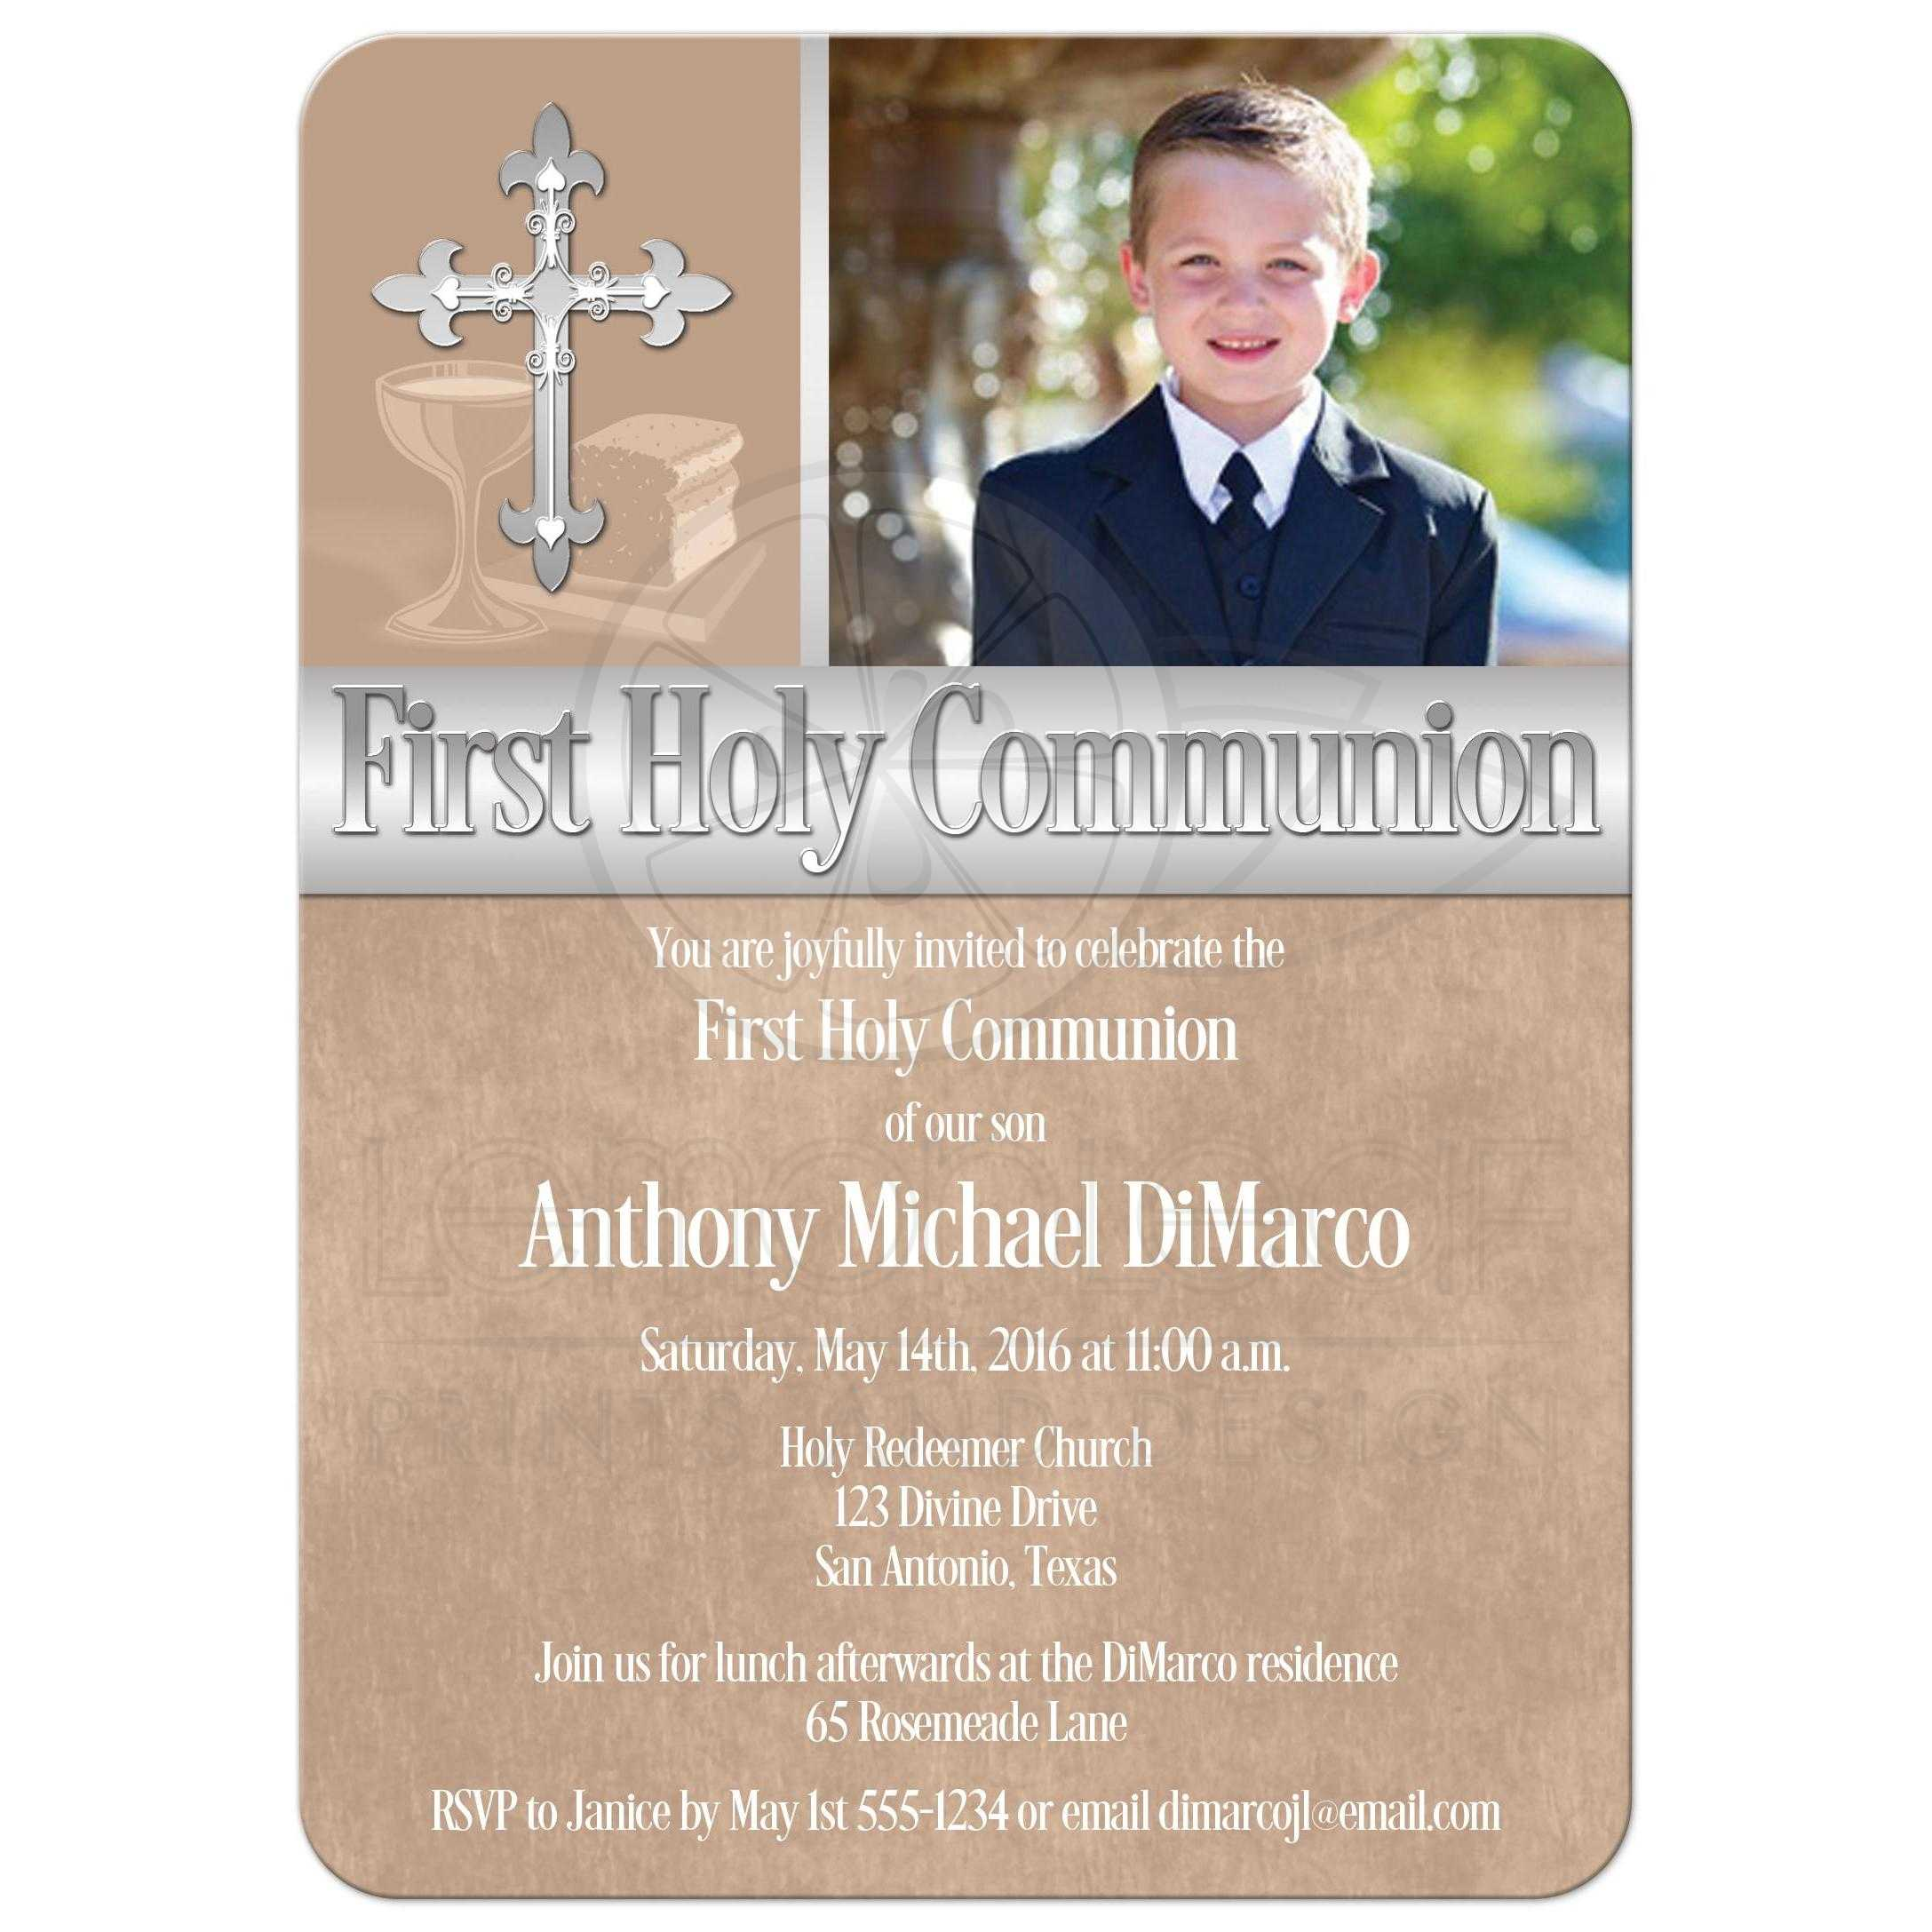 First Holy Communion Invitation  Photo Template  Brown. Fake Hospital Note Template. Soccer Players Profile Template. Facebook Yard Sale App. Graduation Cap Decoration Nursing. Microsoft Office Resume Template Free. Template For Facebook Cover. List Of Post Graduate Football Programs. Monthly Budget Template Excel